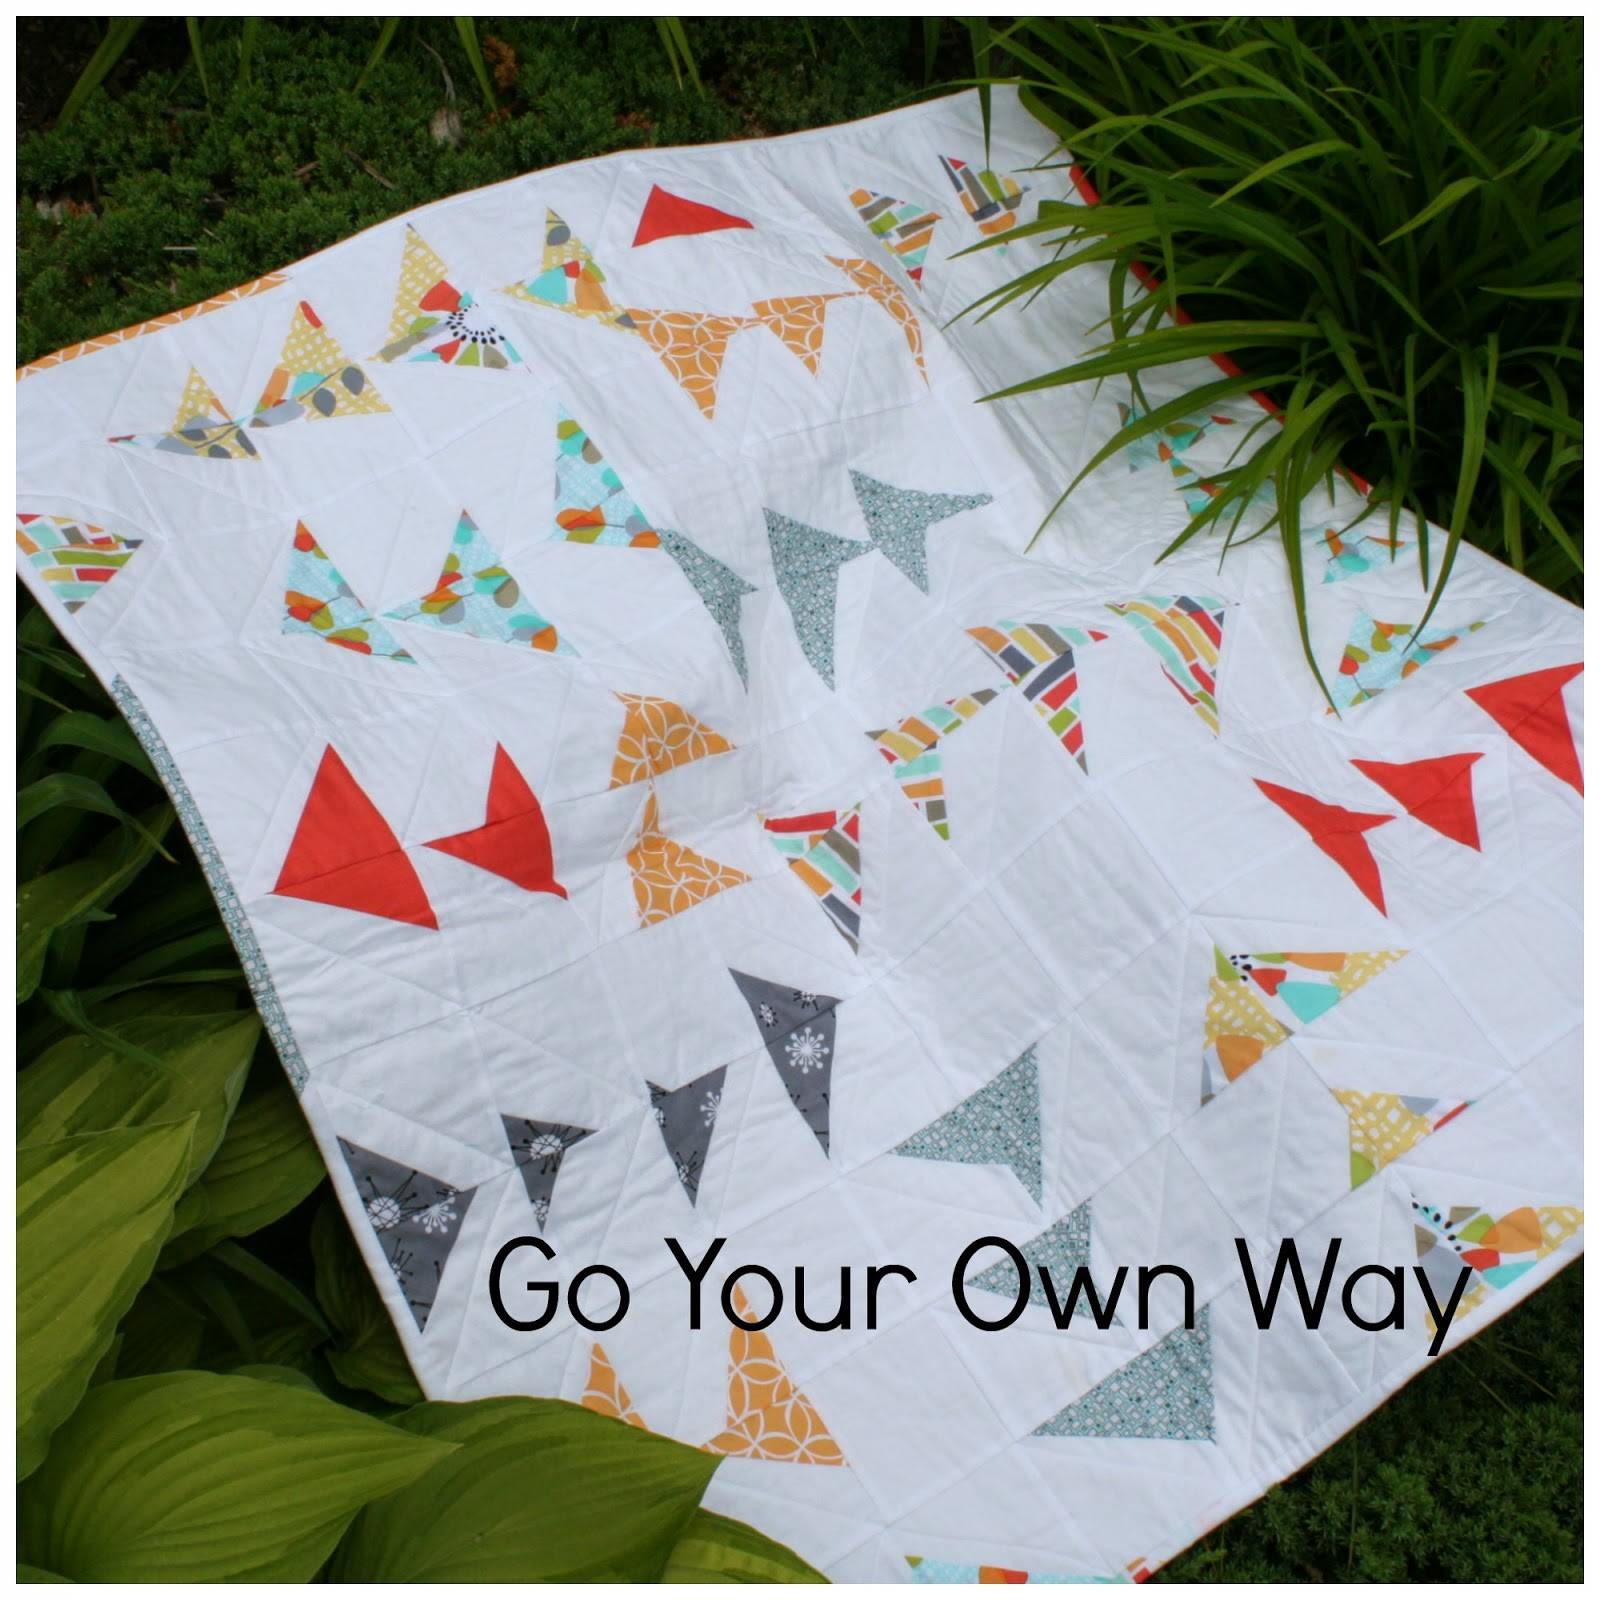 http://quarterinchfromtheedge.blogspot.ca/2014/07/friday-finish-go-your-own-way.html